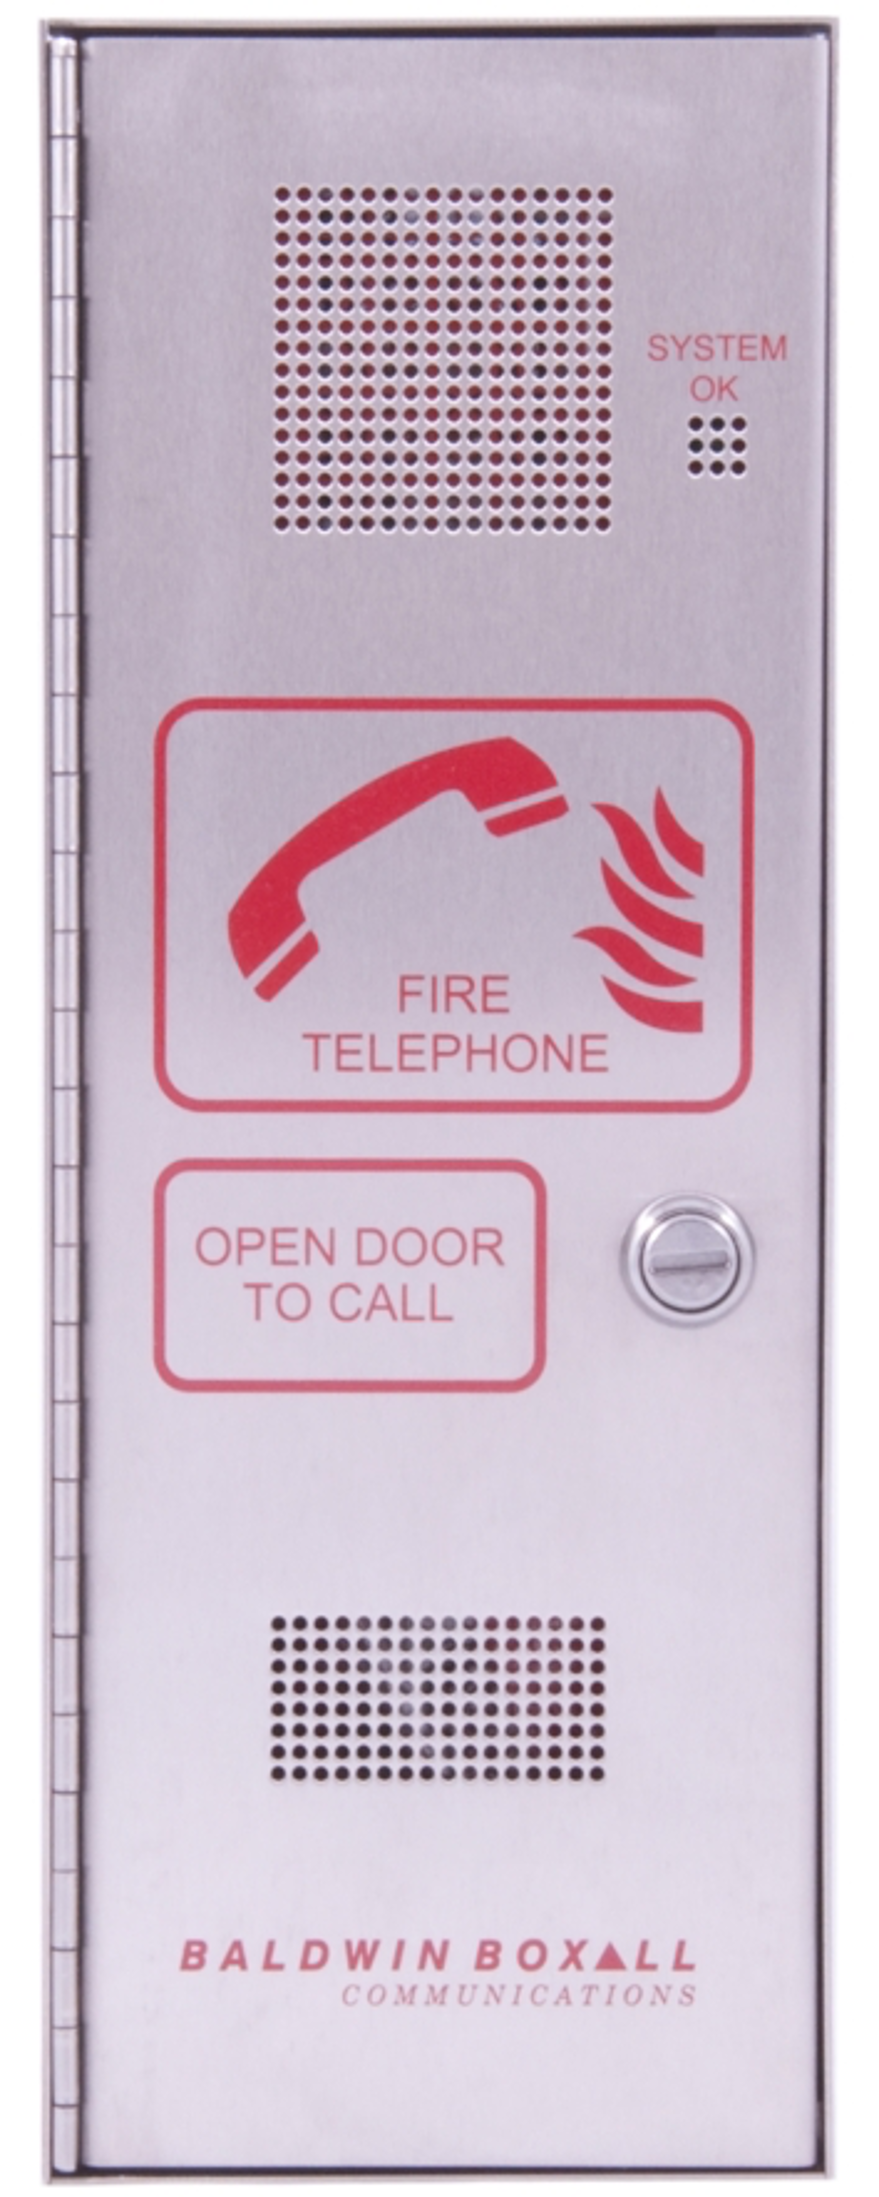 Baldwin Boxall OmniCare BVOCFSL Type-A Fire Telephone with Locking Door Stainless Steel